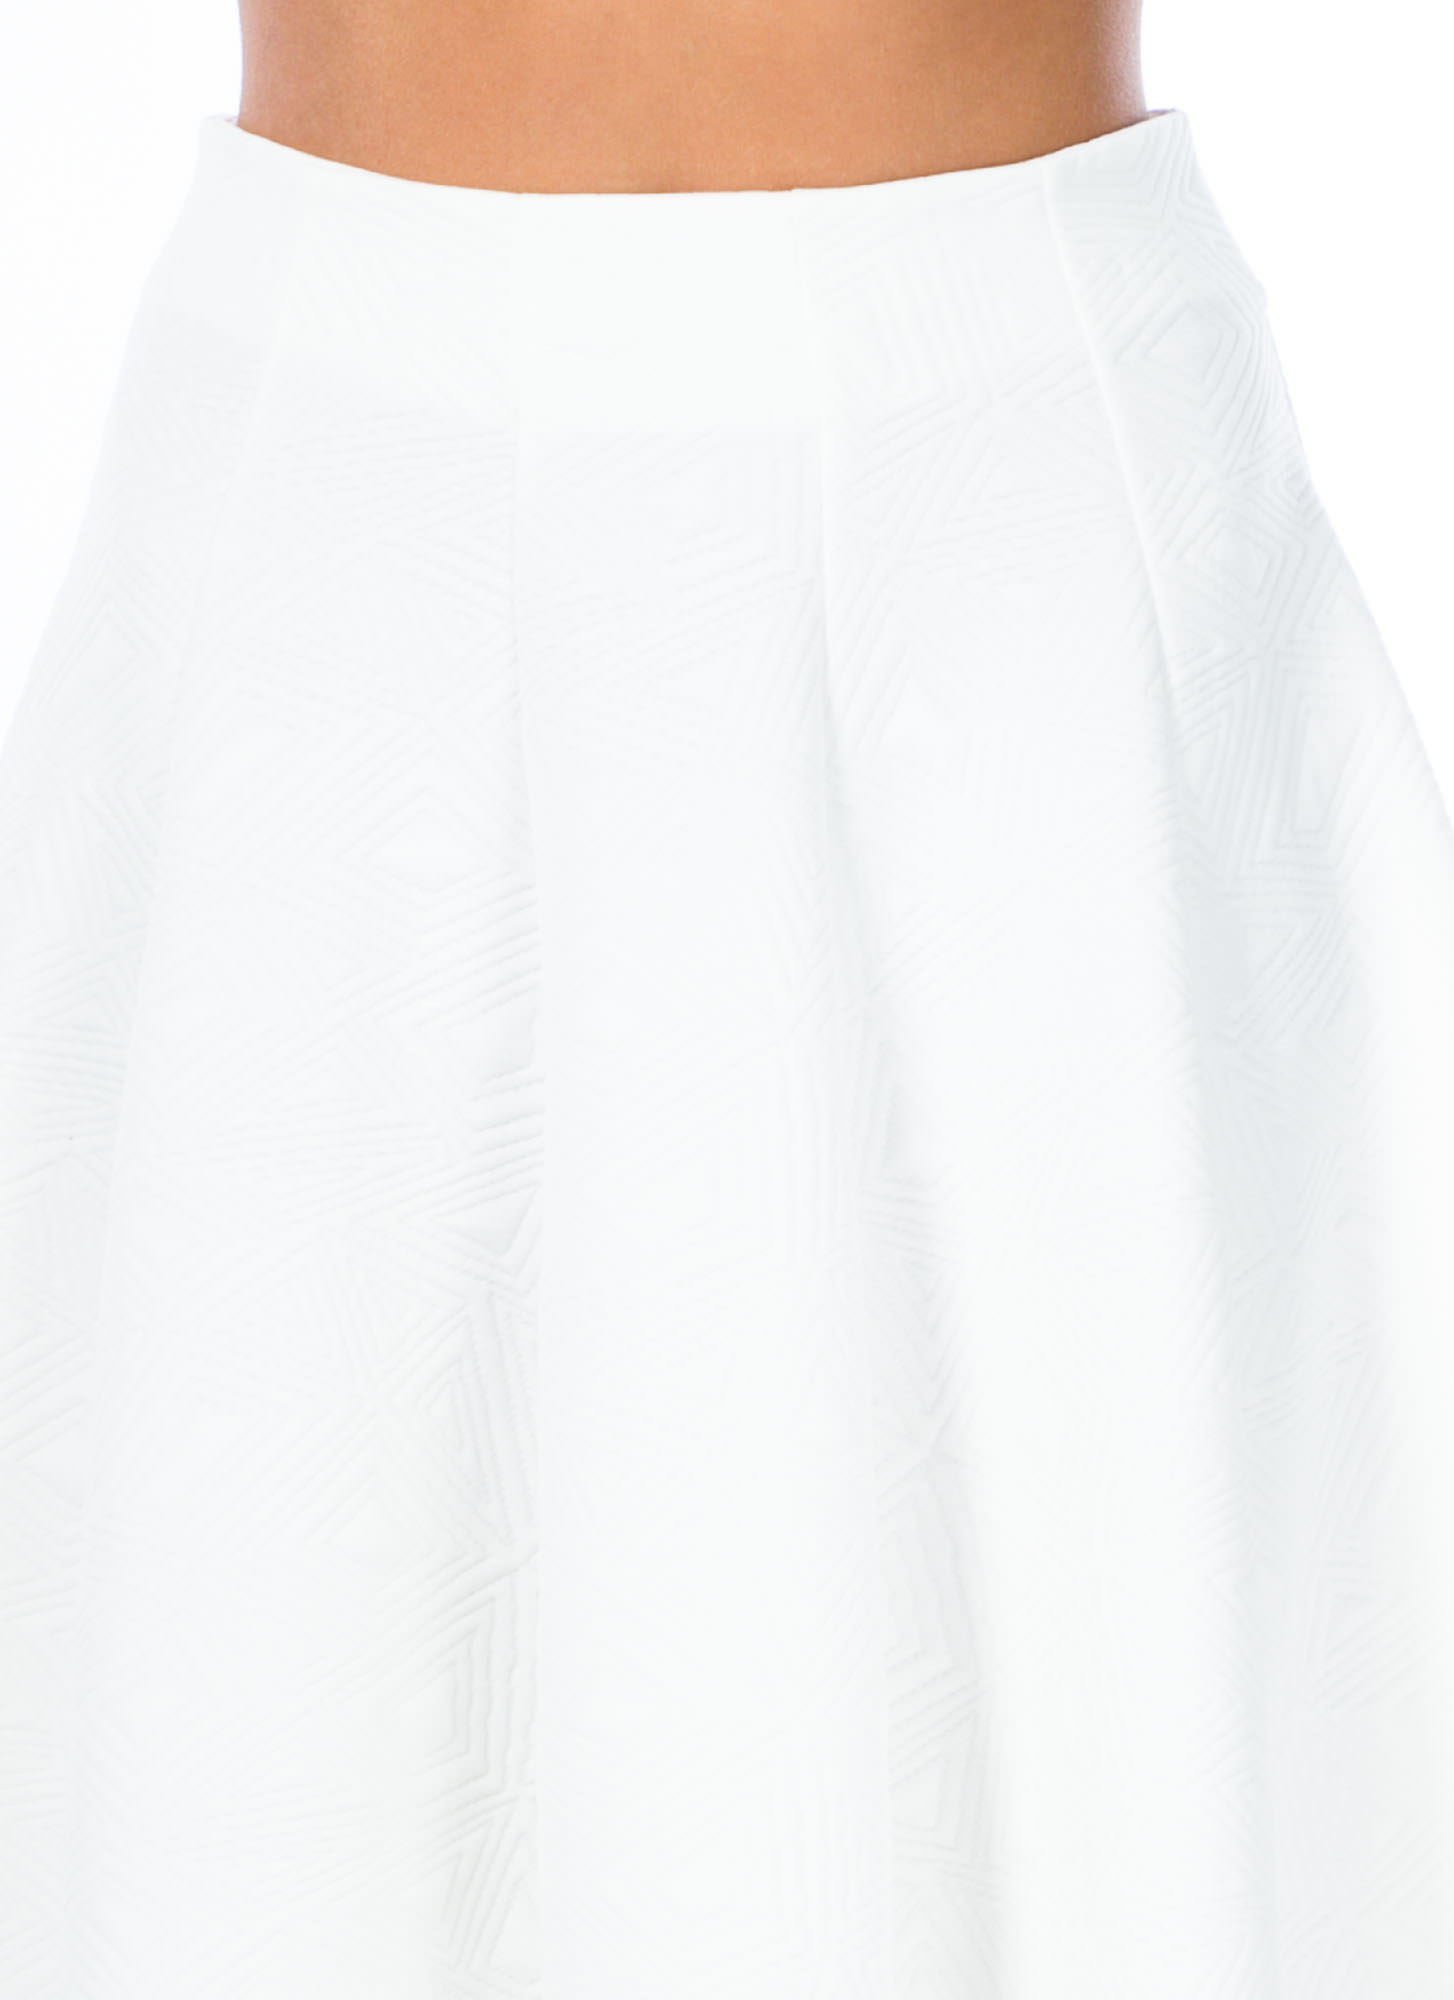 Taking Shape Stitched Skirt WHITE